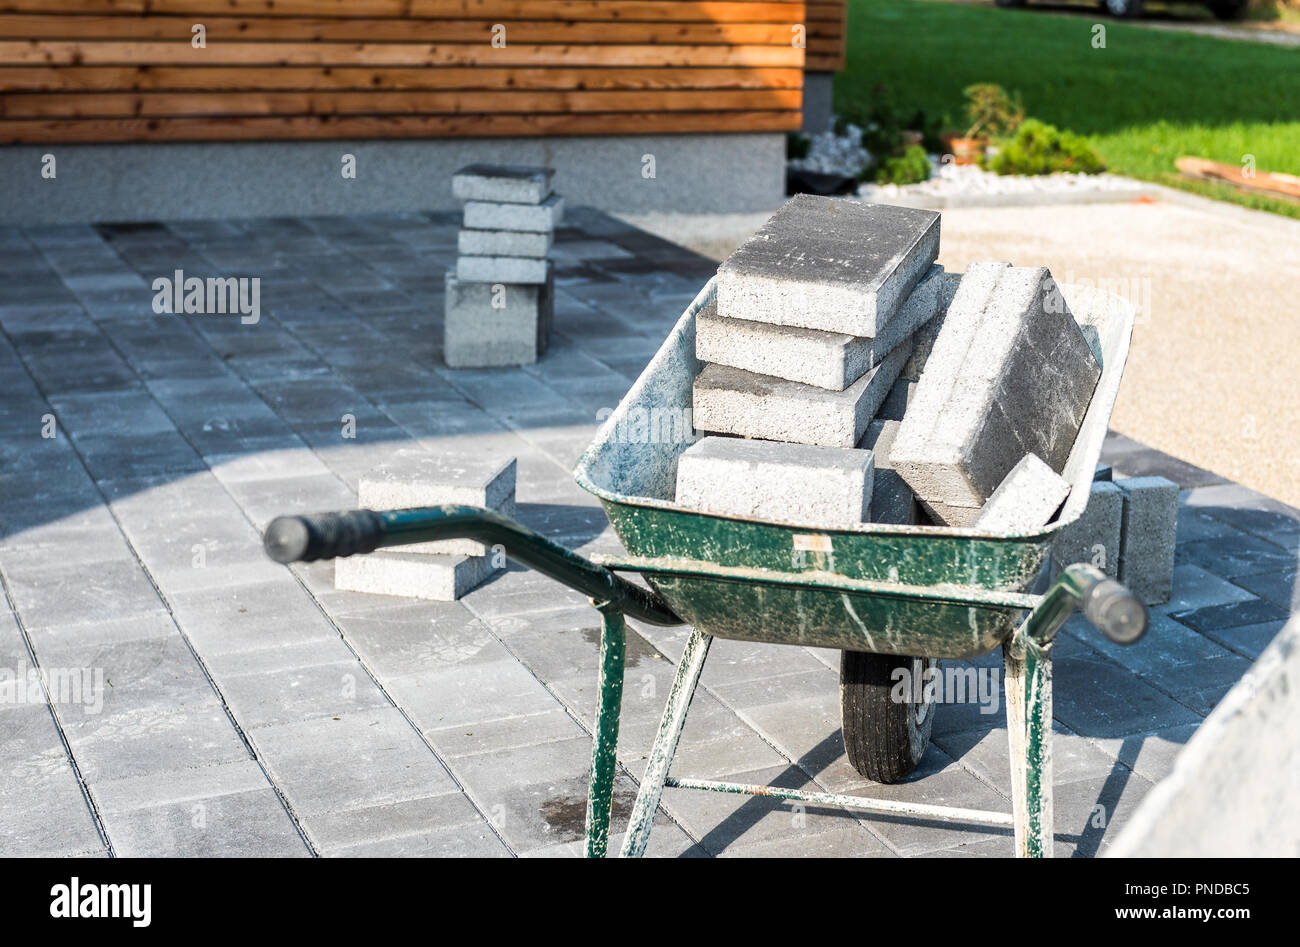 Laying Gray Concrete Paving Slabs In House Courtyard Driveway Patio.  Wheelbarrows Loaded With New Tiles Or Slabs For Driveway, Sidewalk Or Patio  On Le